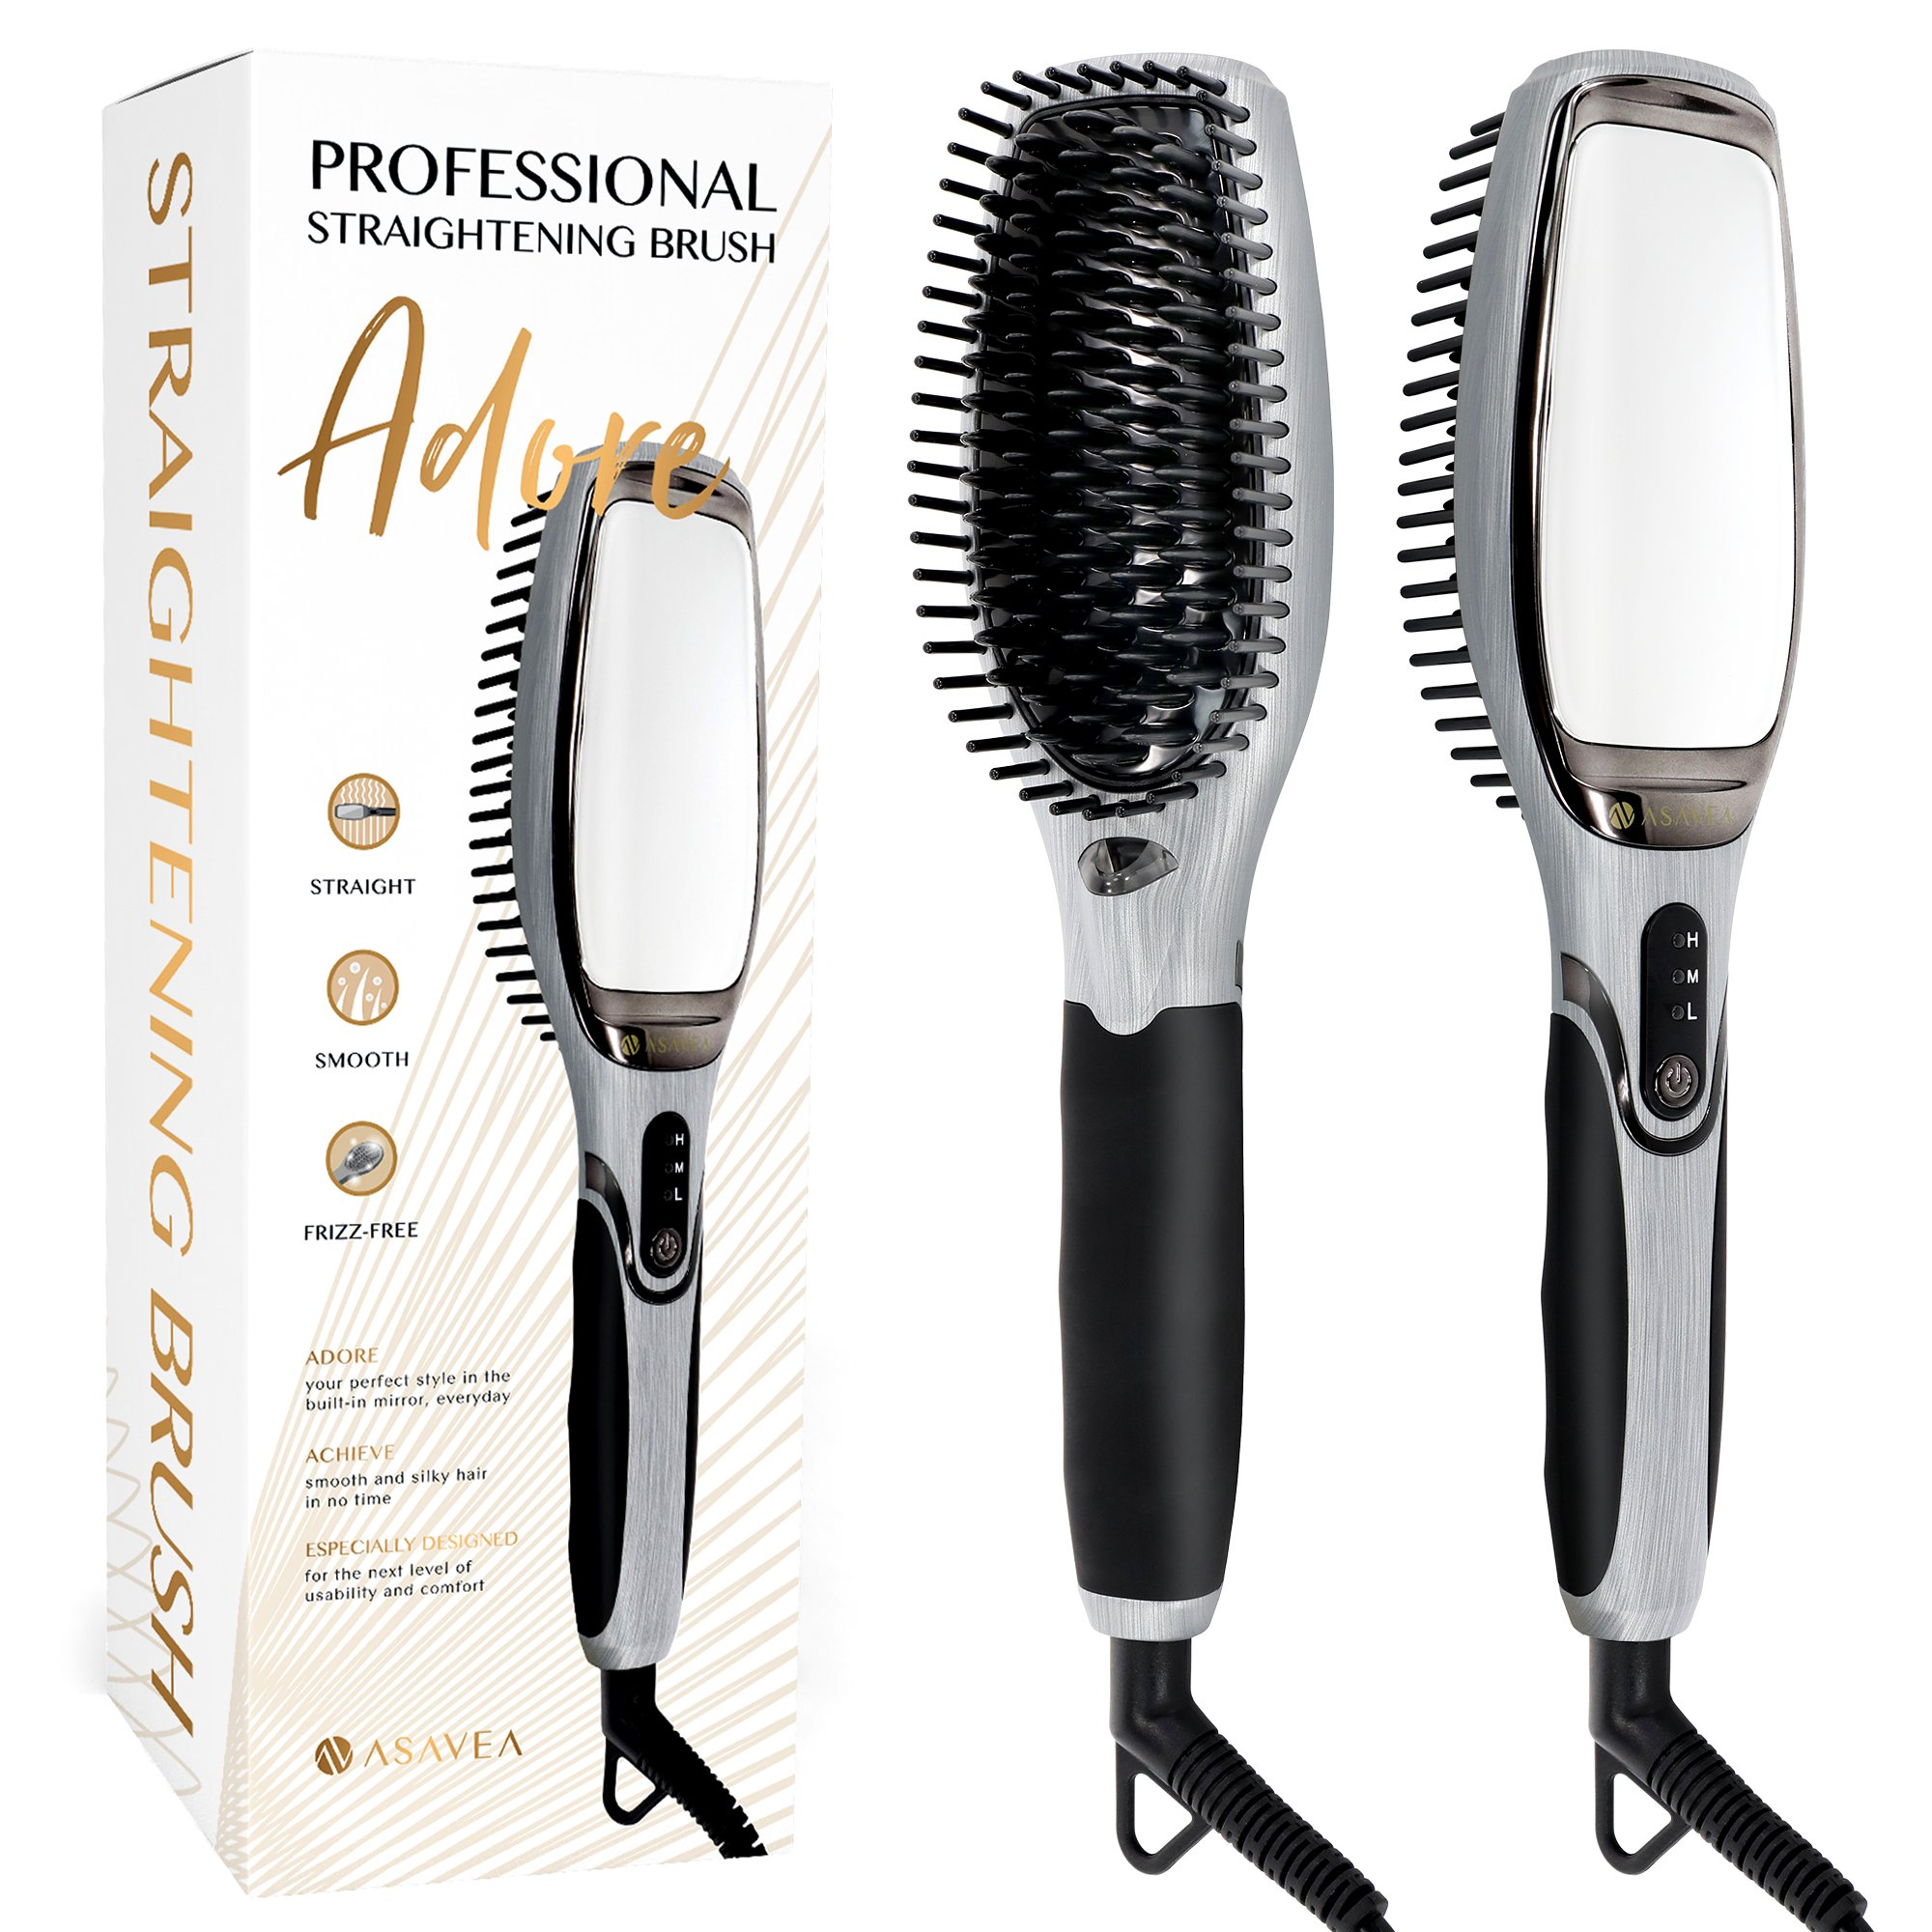 AsaVea Professional Hair Straightening Brush (Black/Grey)